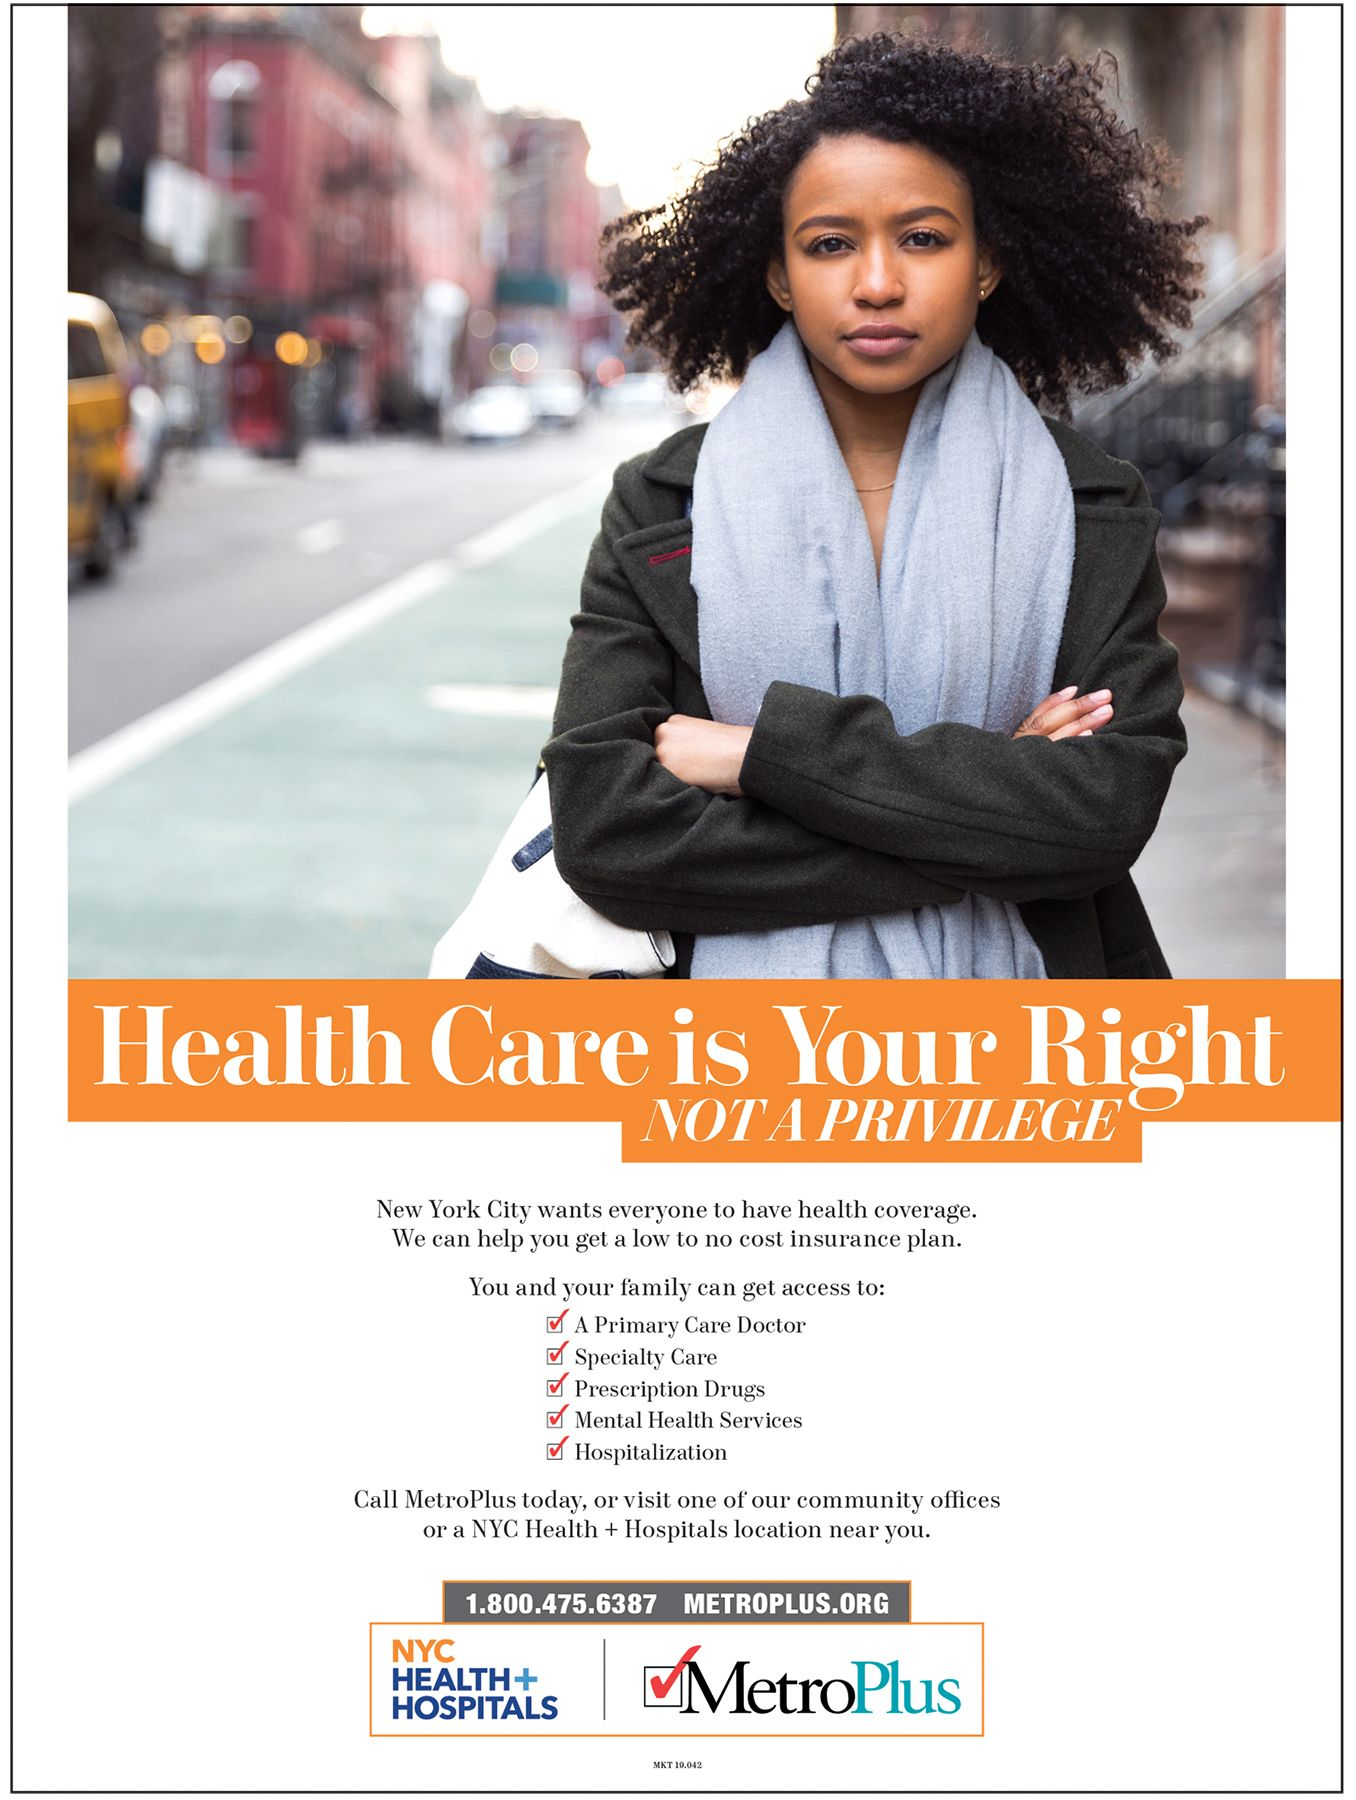 Health Care Is A Right Healthinsurance Healthcare Metroplus